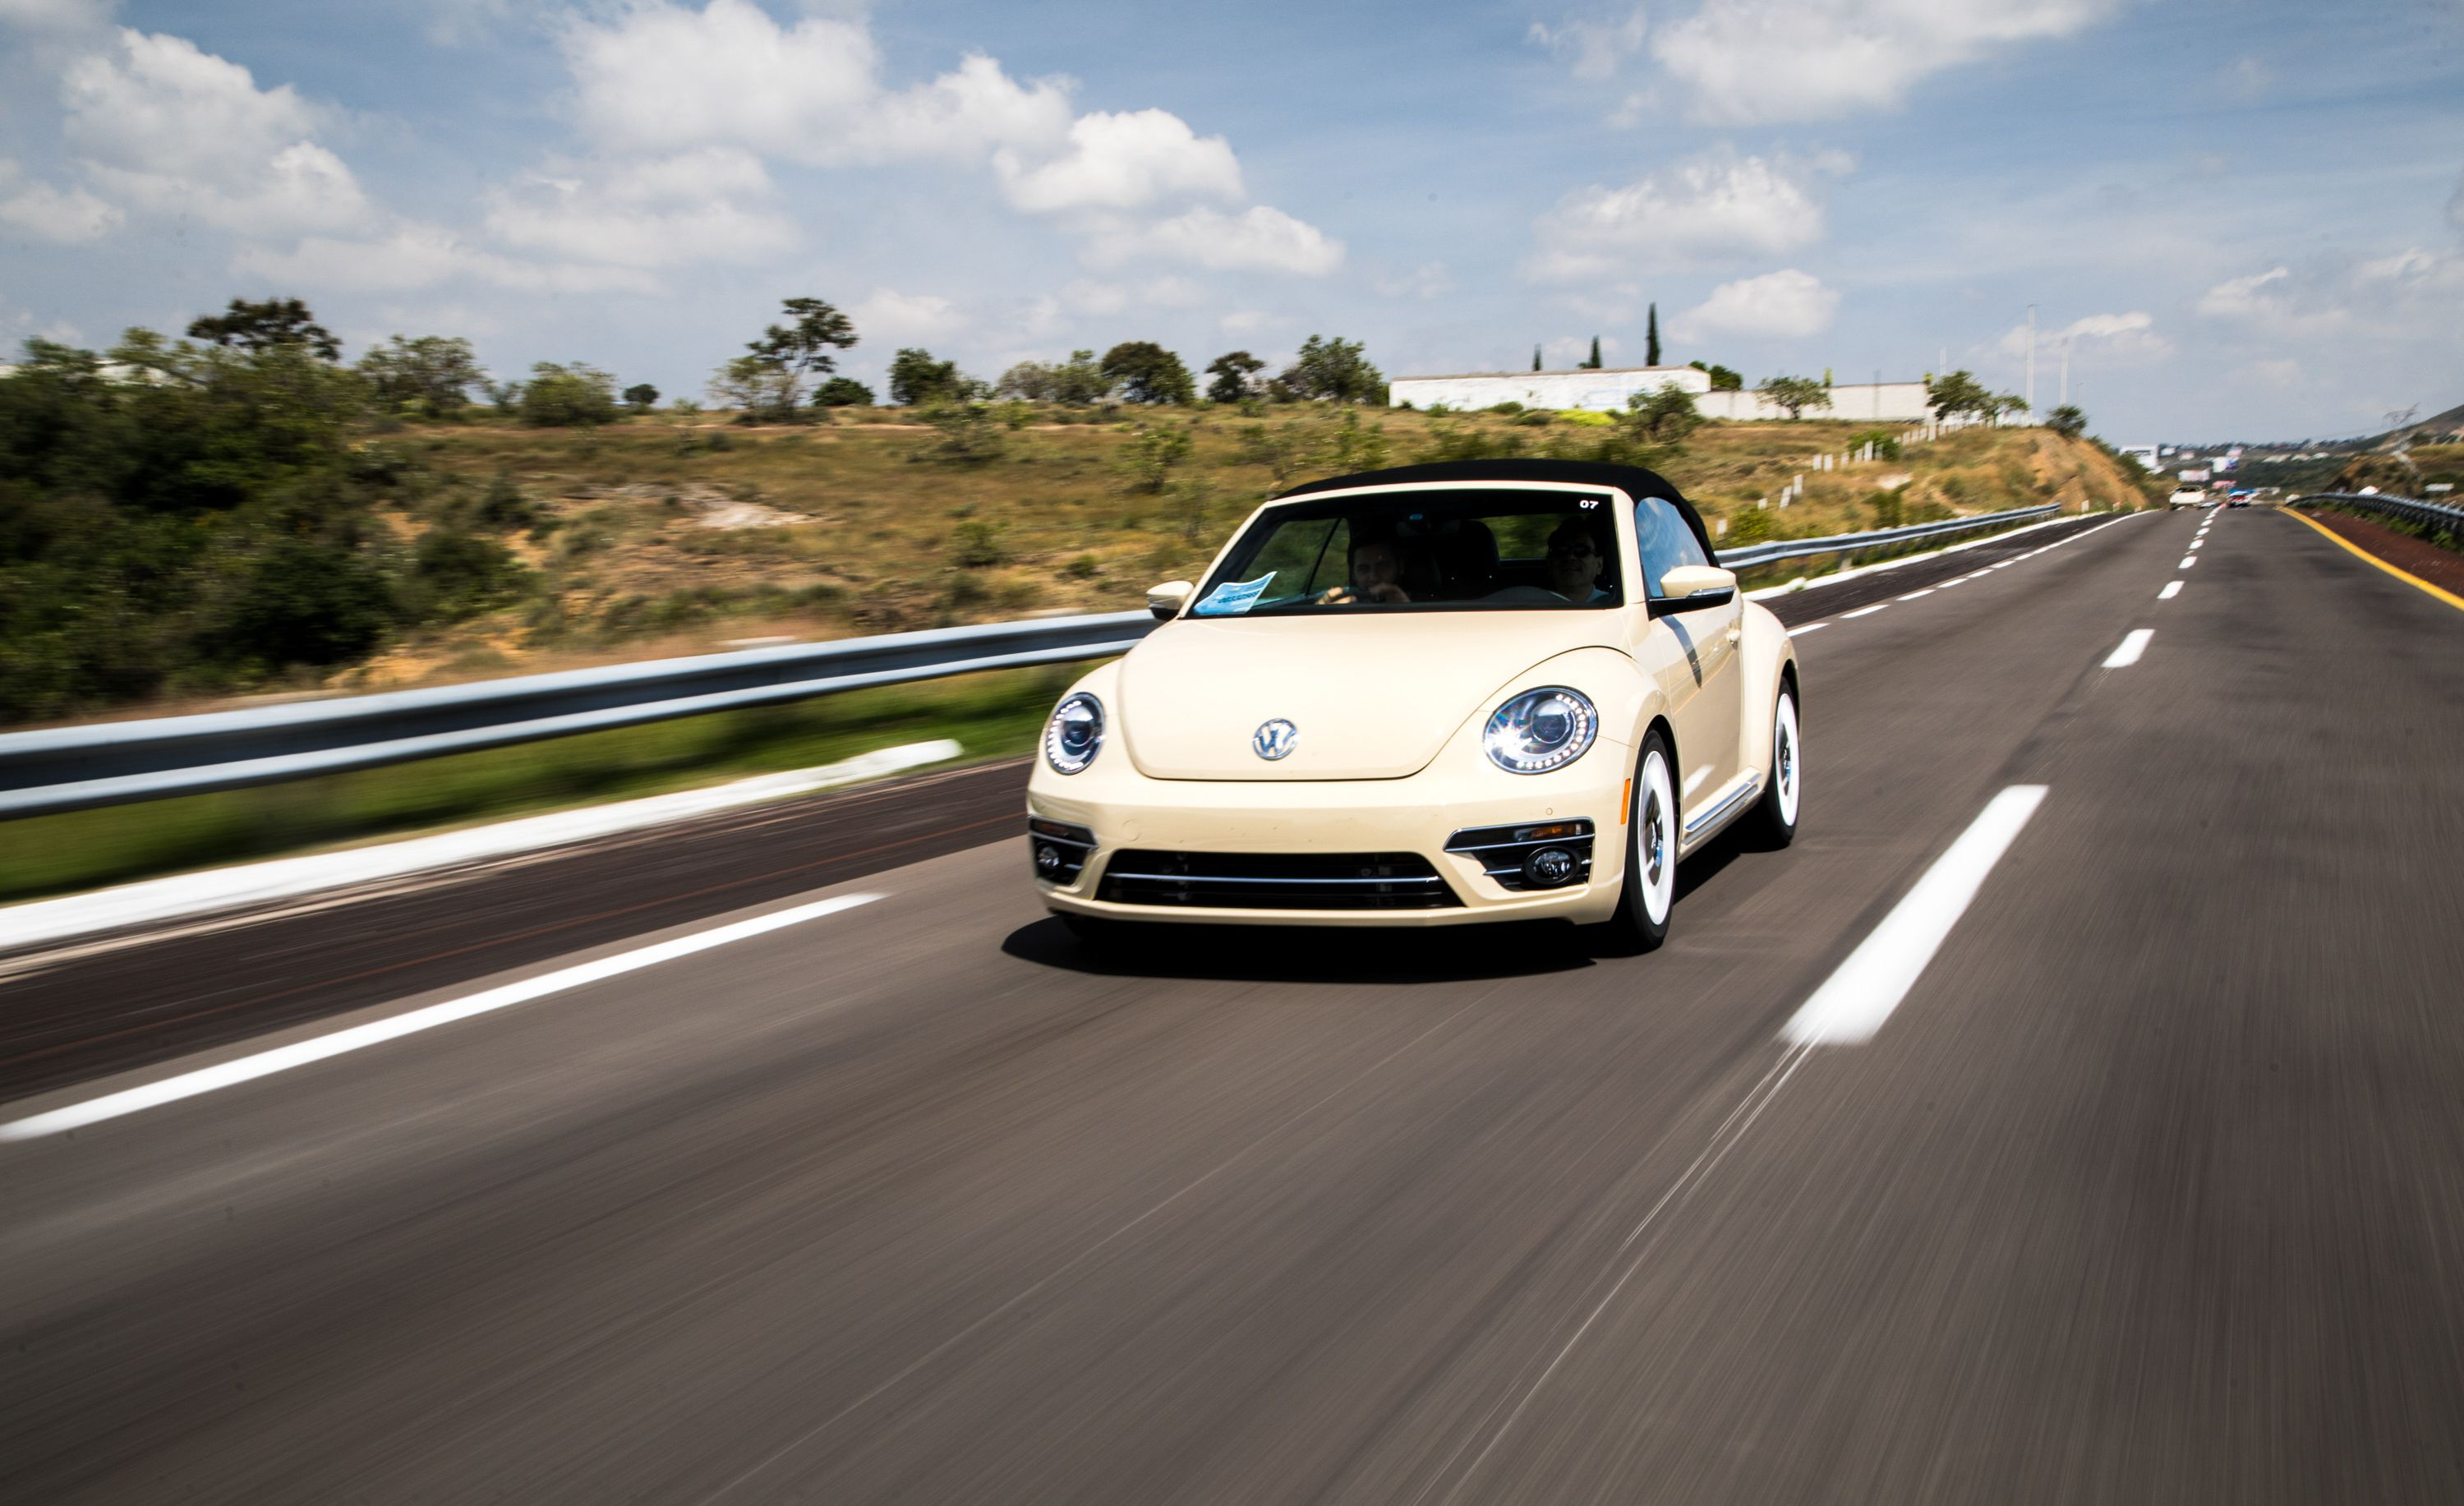 2019 Volkswagen Beetle Final Edition Is A Stylish Send Off For The Bug